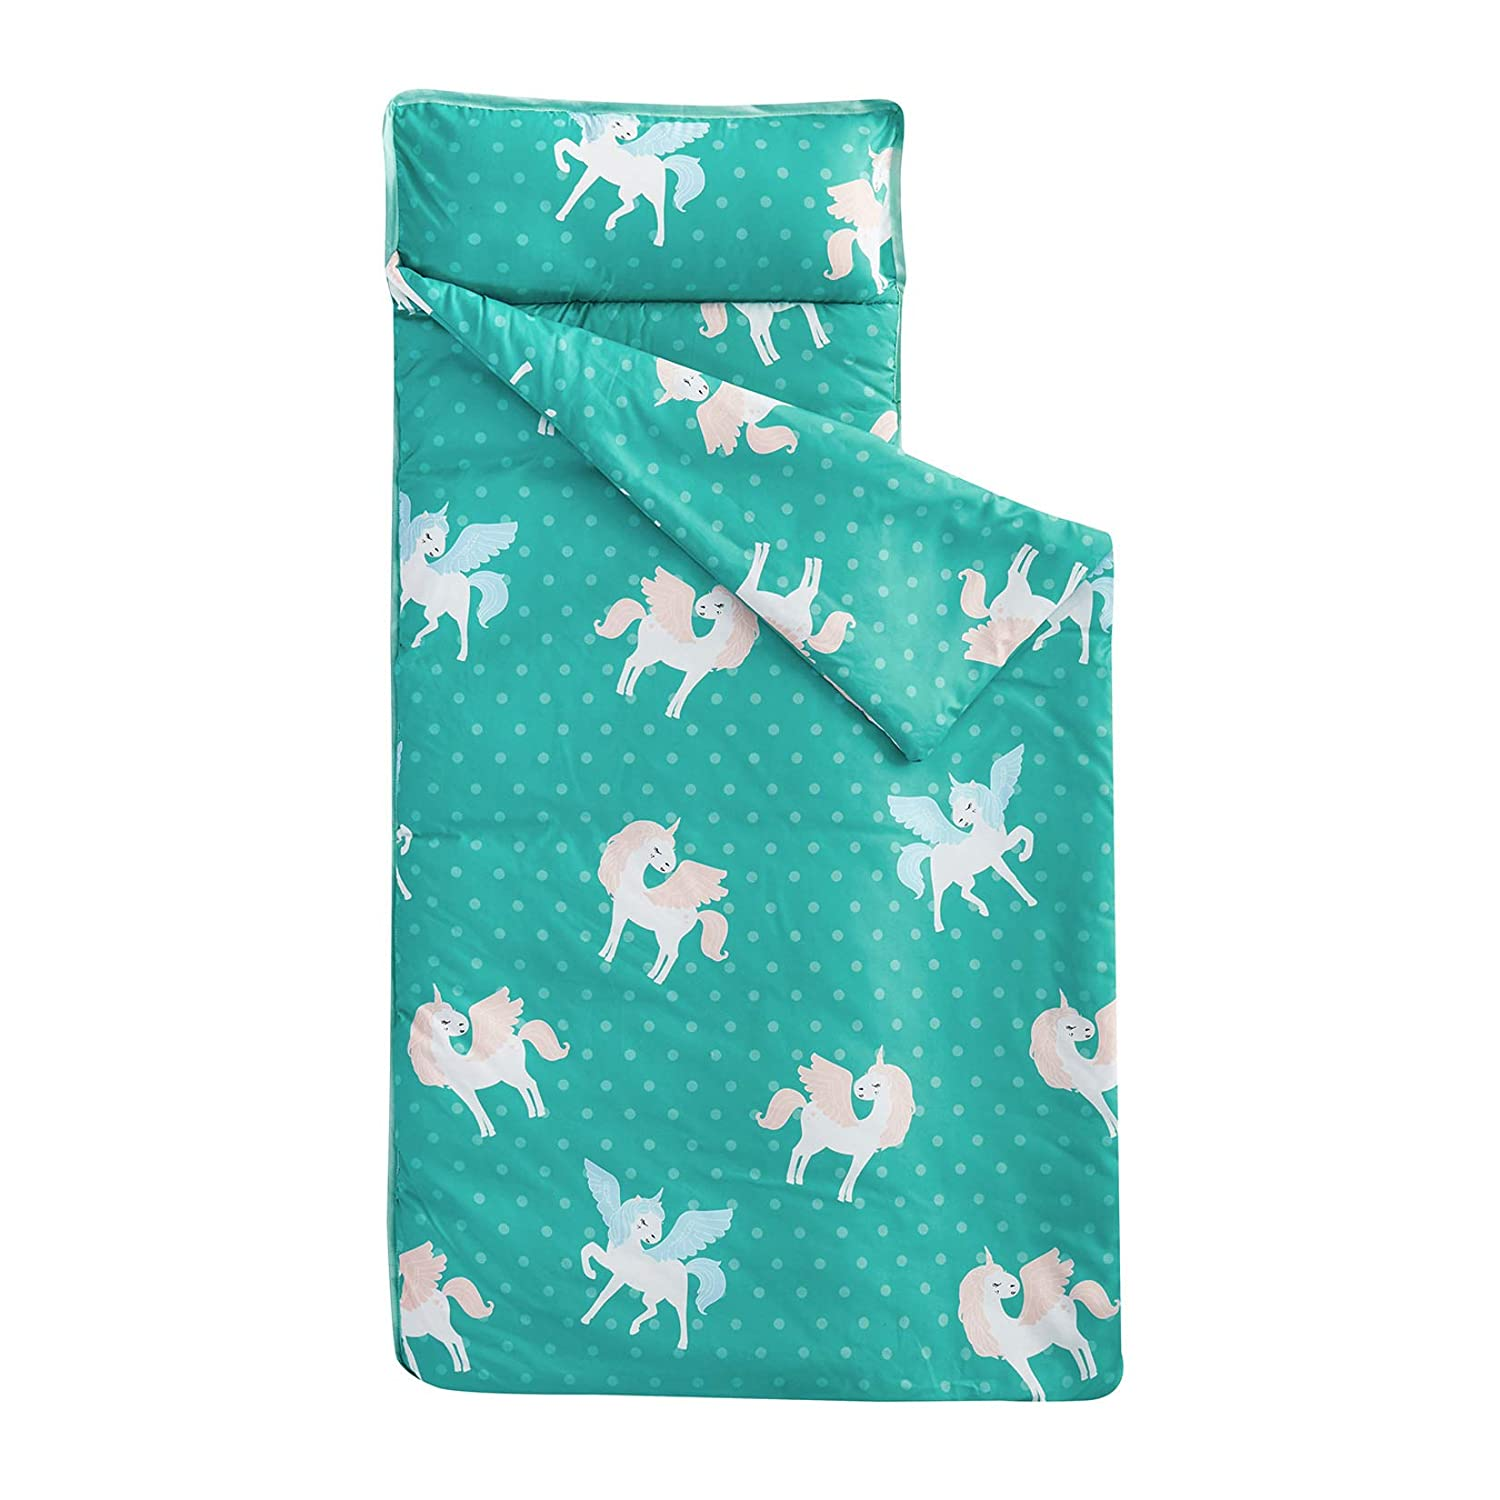 Wake In Cloud - Nap Mat with Removable Pillow for Kids Toddler Boys Girls Daycare Preschool Kindergarten Sleeping Bag, White Unicorns with Wings on Teal, 100% Soft Microfiber (50